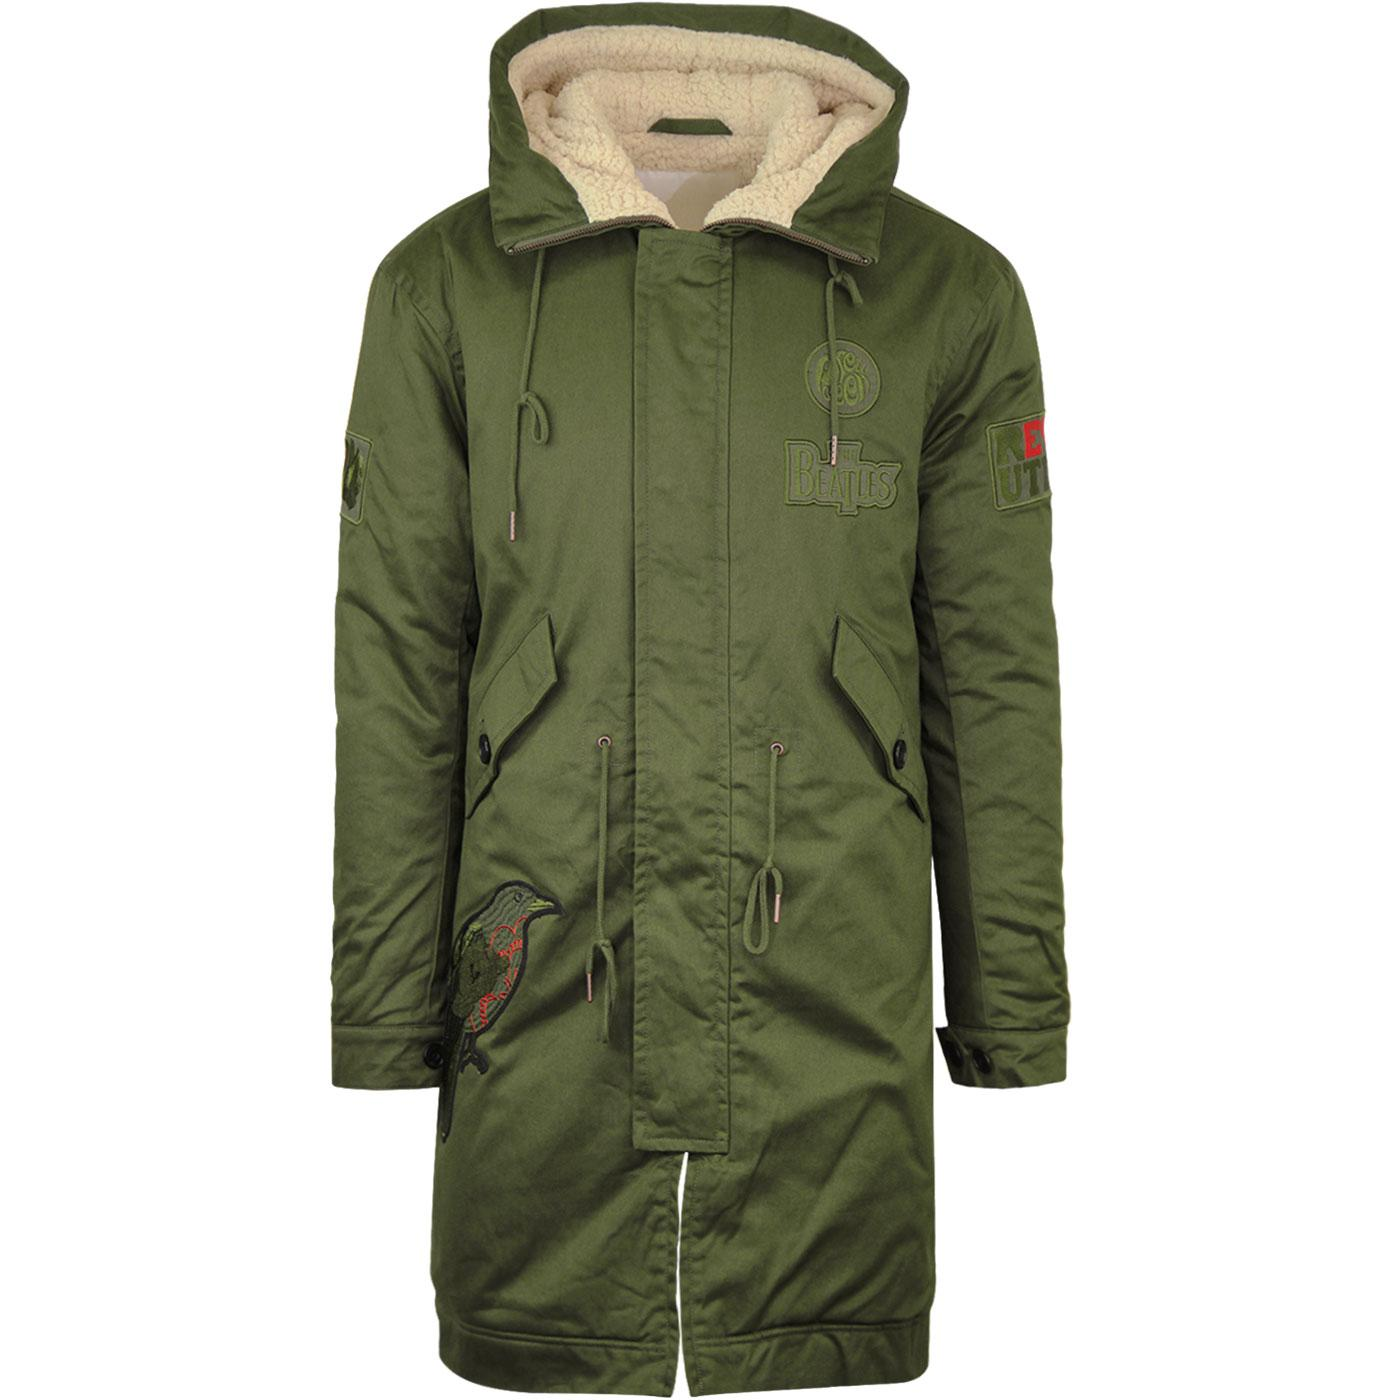 Blackbird PRETTY GREEN x THE BEATLES 60s Mod Parka